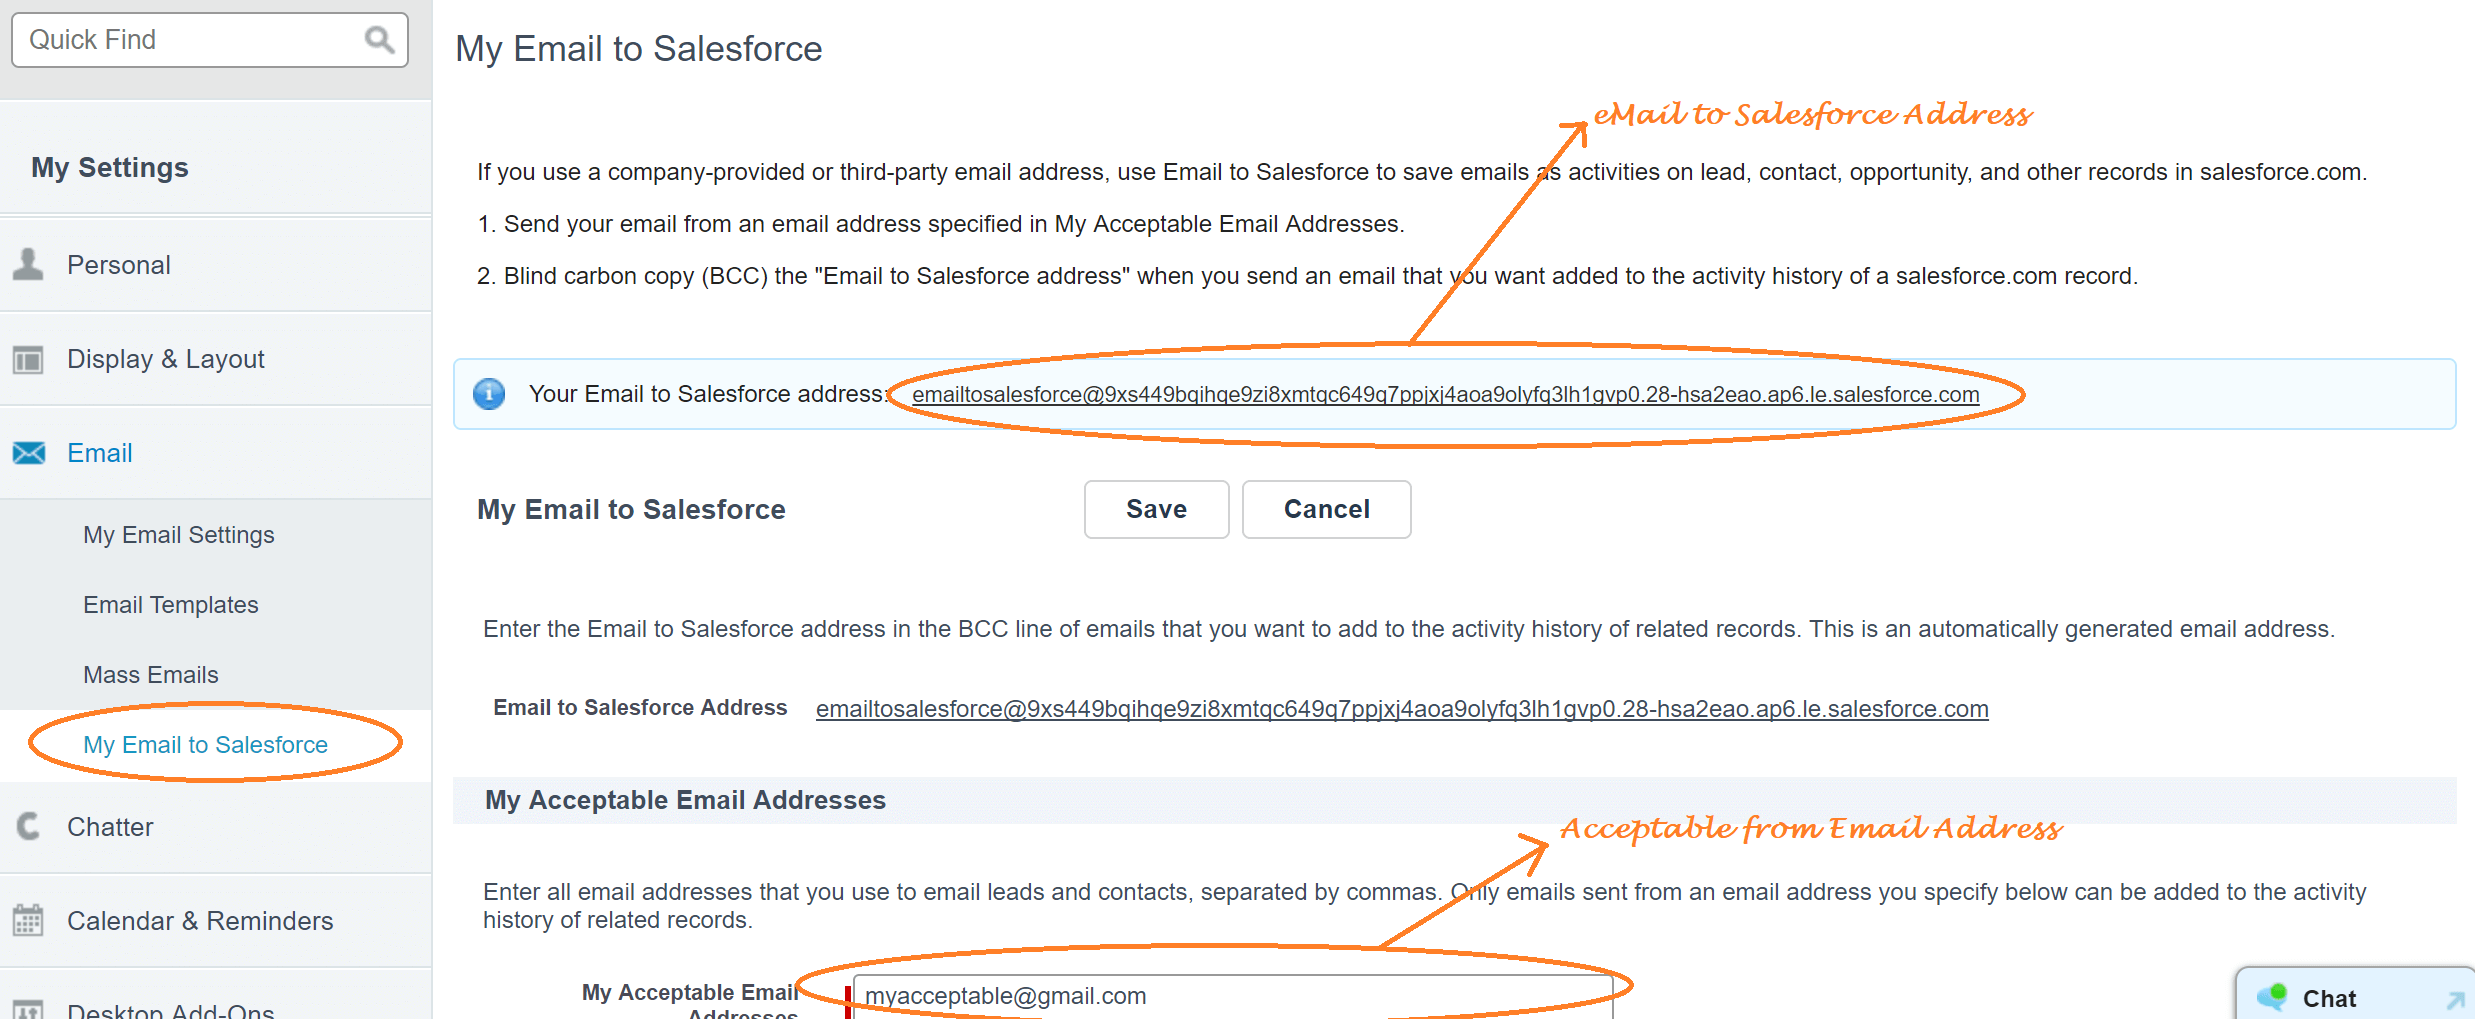 acceptable email and mail to salesforce address